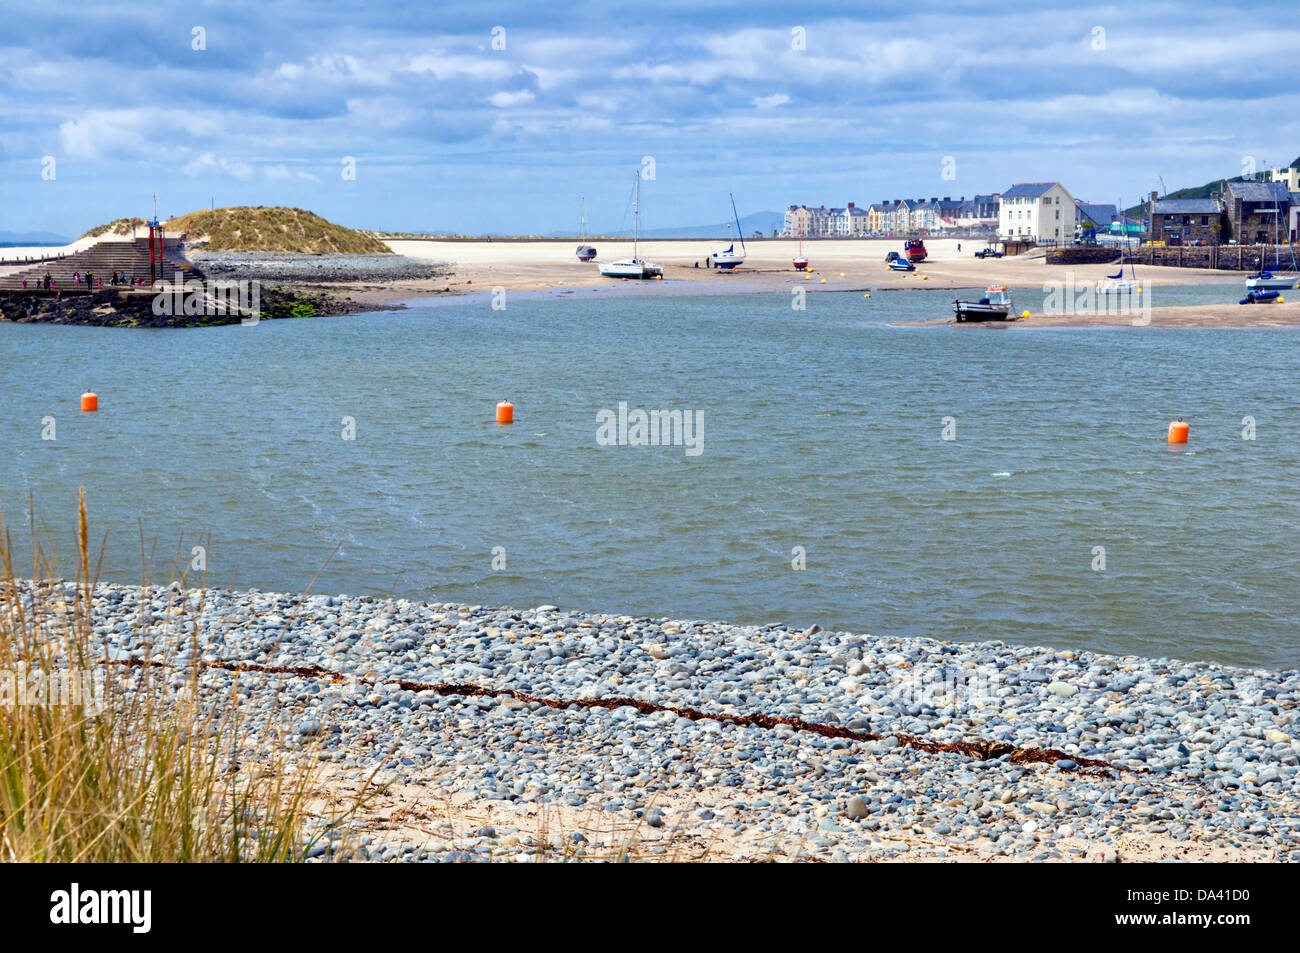 Seaside resort of Barmouth, Barmouth Bay, Gwynedd, Wales, UK taken on fine day from Fairbourne - Stock Image